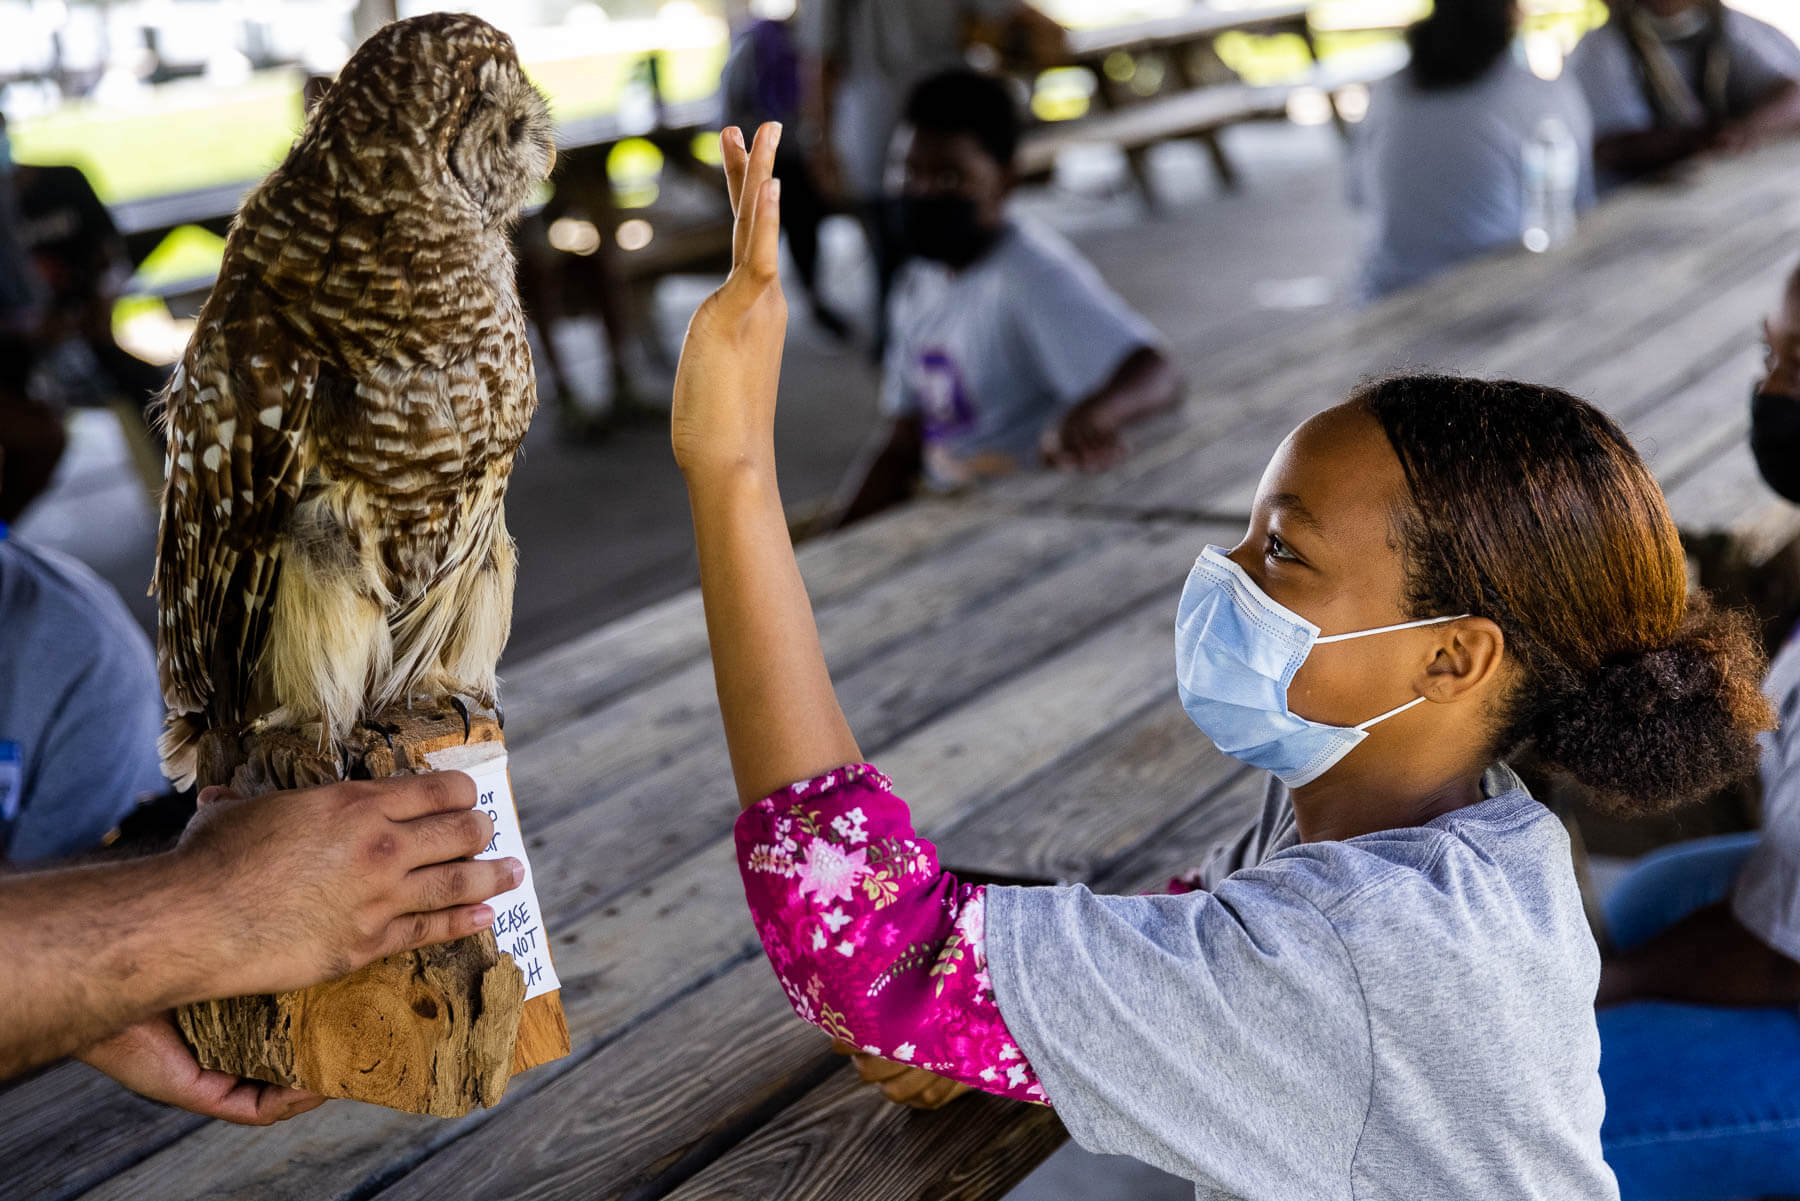 Young girl observes a taxidermied owl.